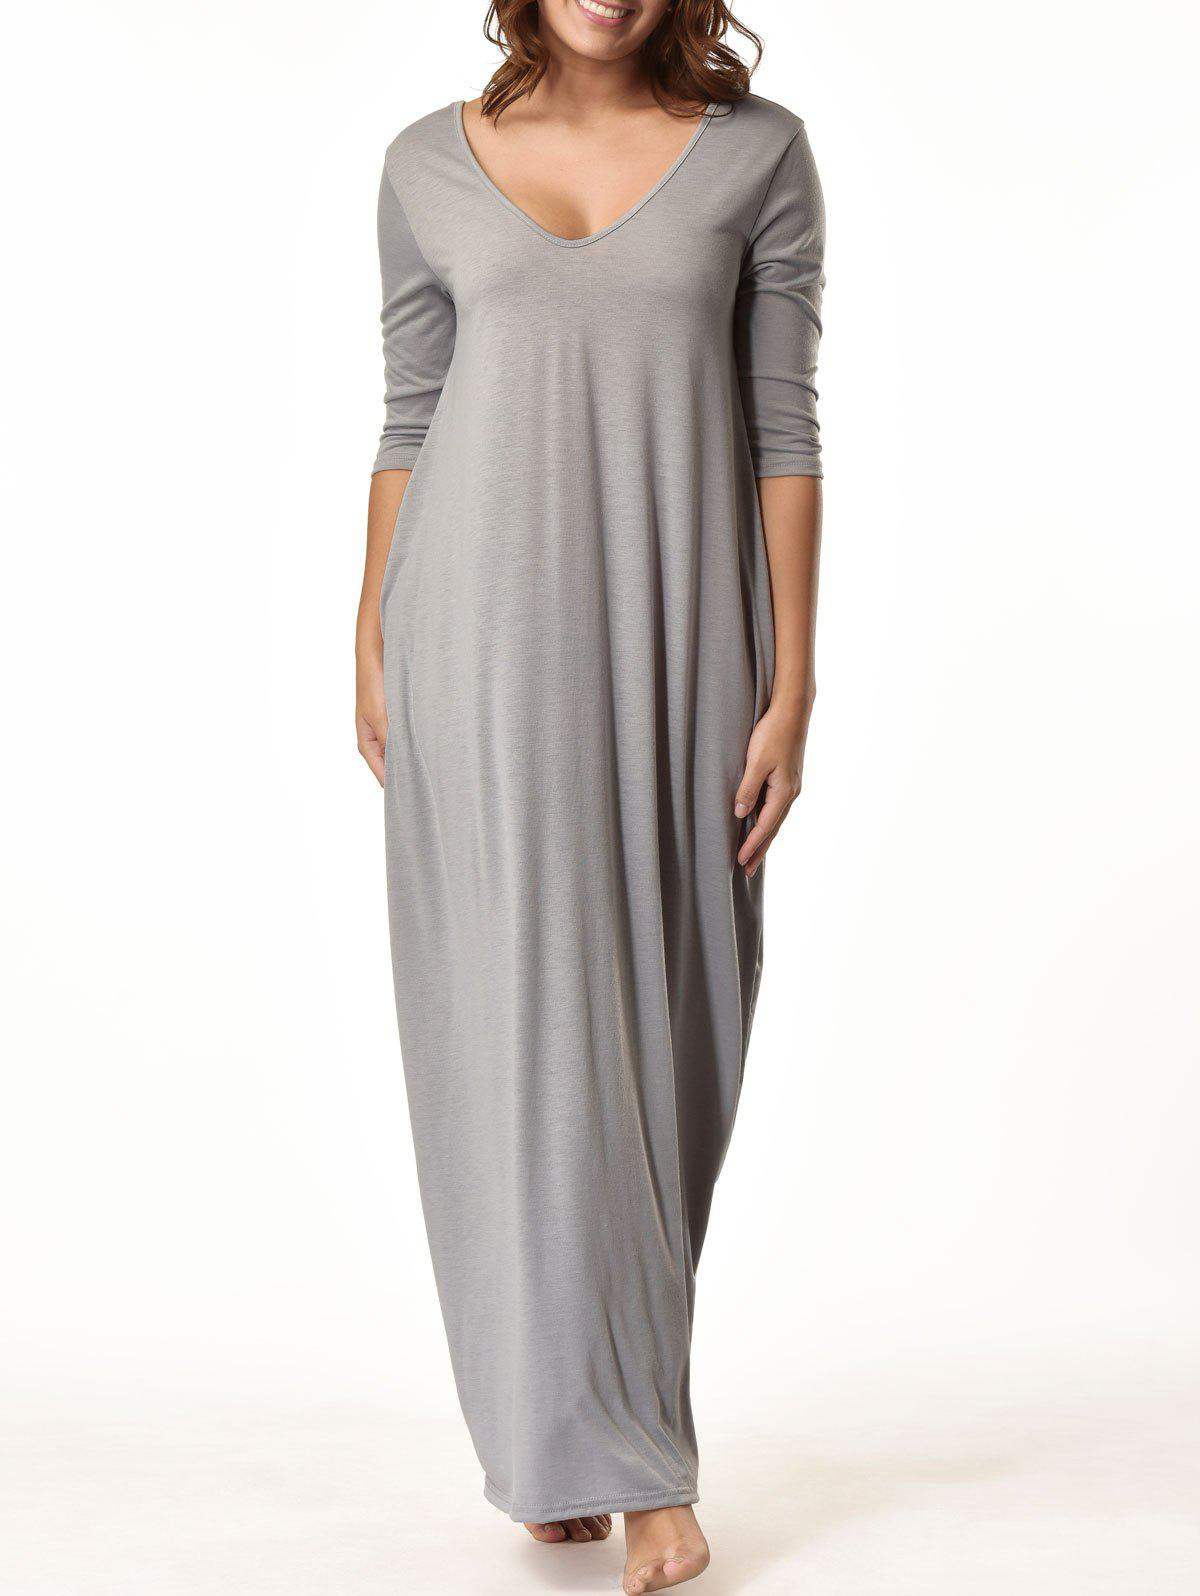 V Neck Floor Length Baggy Dress - GRAY S